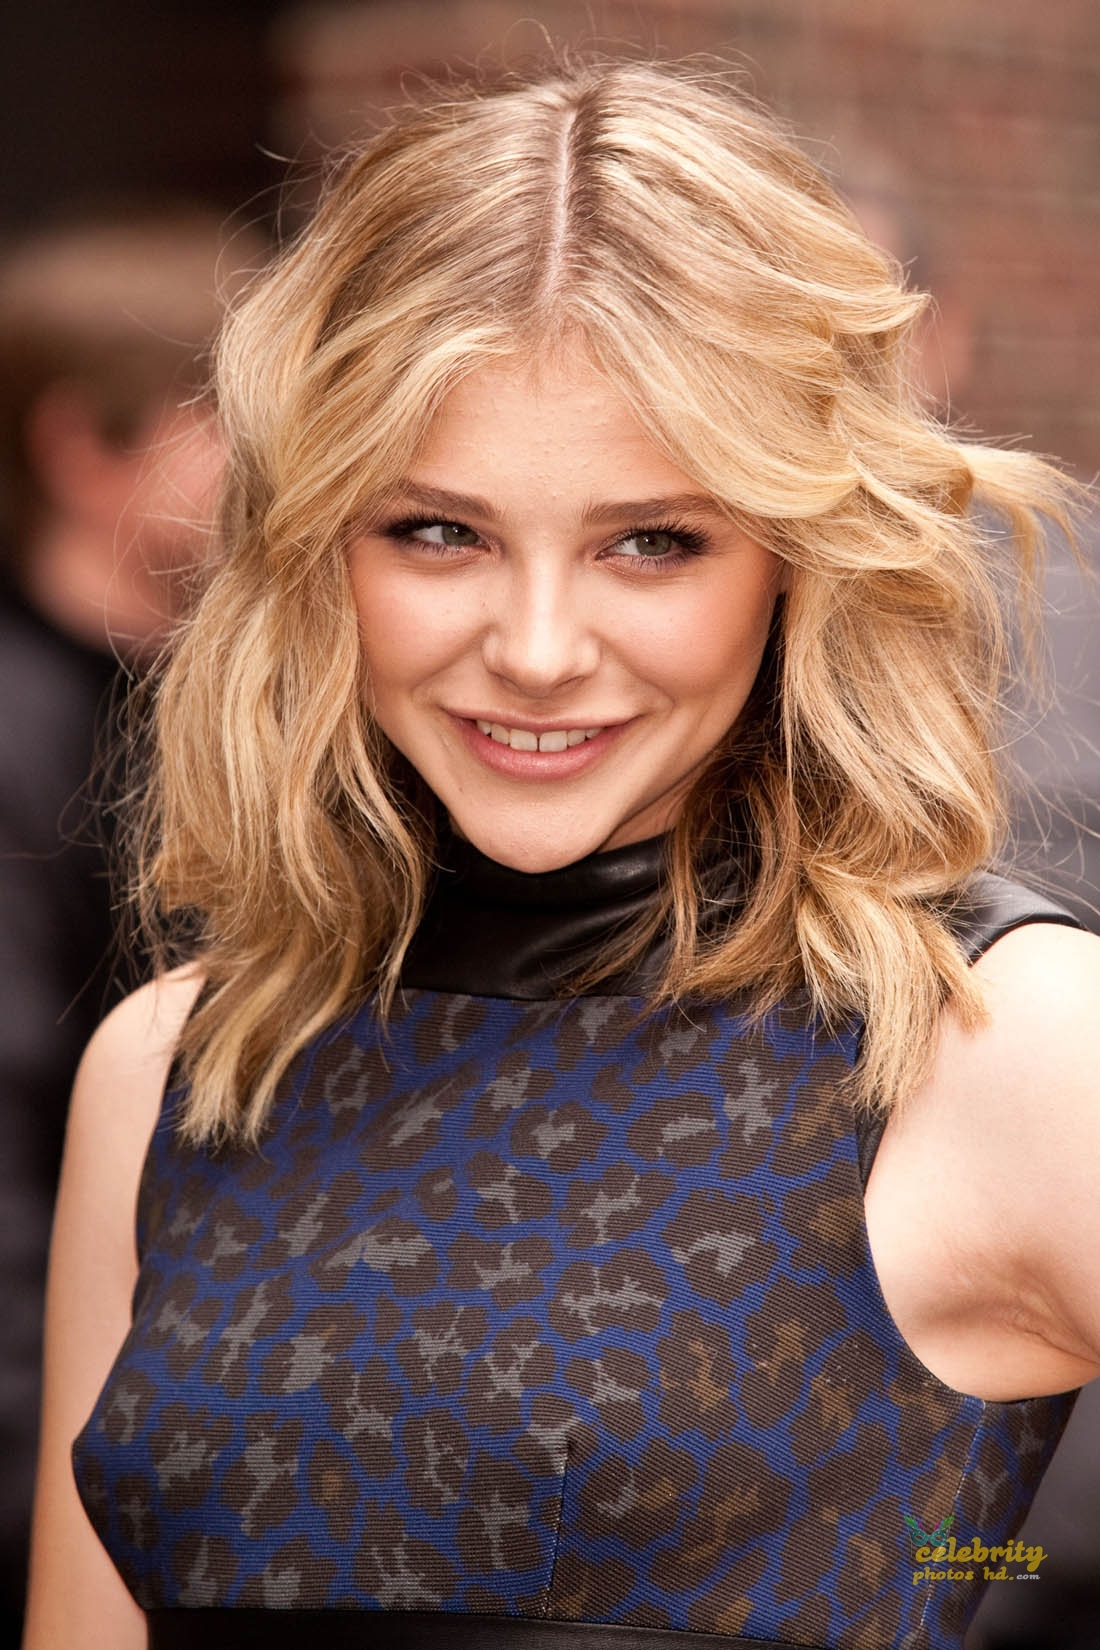 Hollywood Unseen Spicy Actress Chloe Moretz (2)